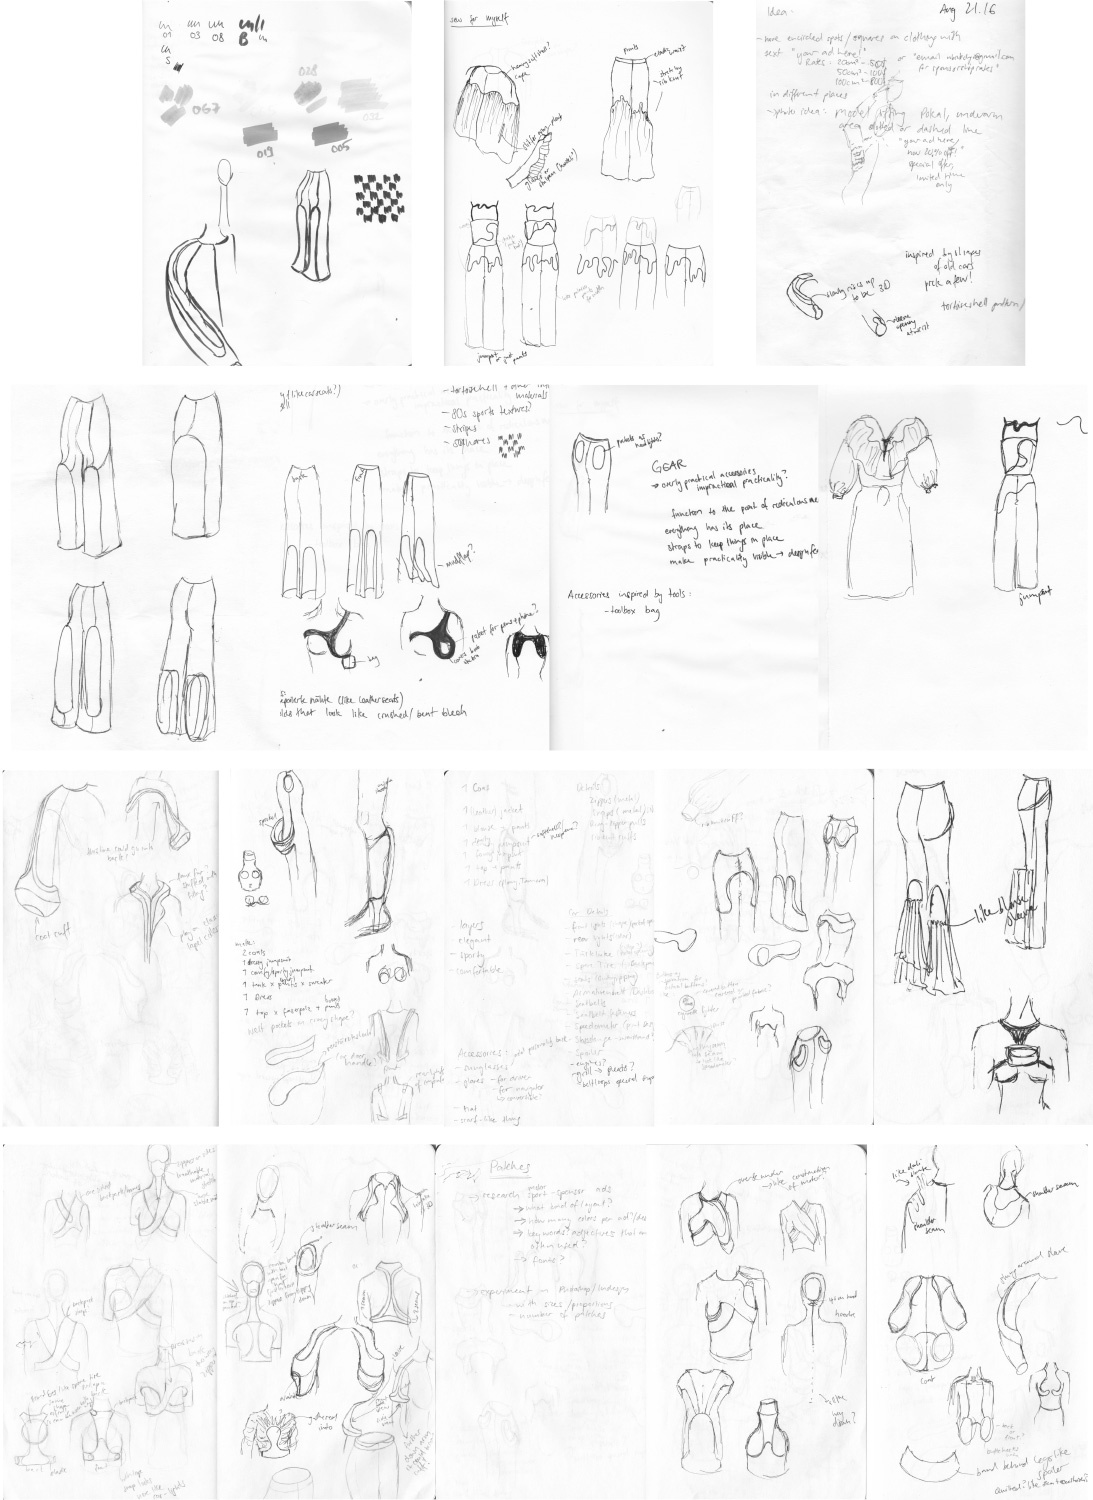 a collection of early sketches